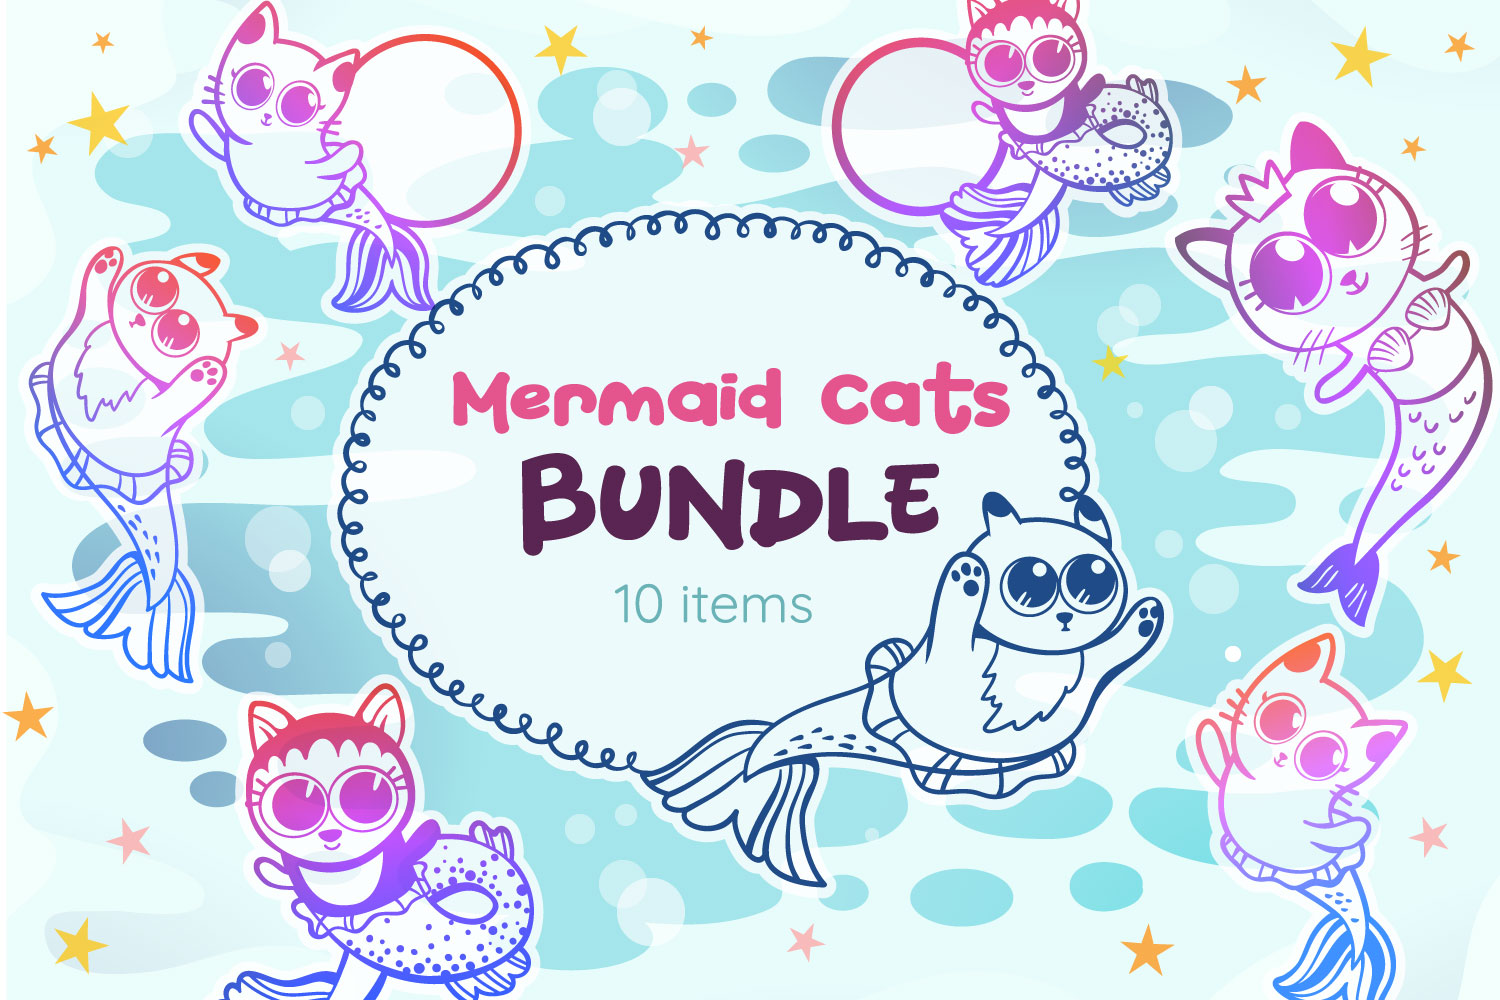 Download Free Mermaid Cats Bundle 10 Cut Files Graphic By Tatiana Cociorva for Cricut Explore, Silhouette and other cutting machines.